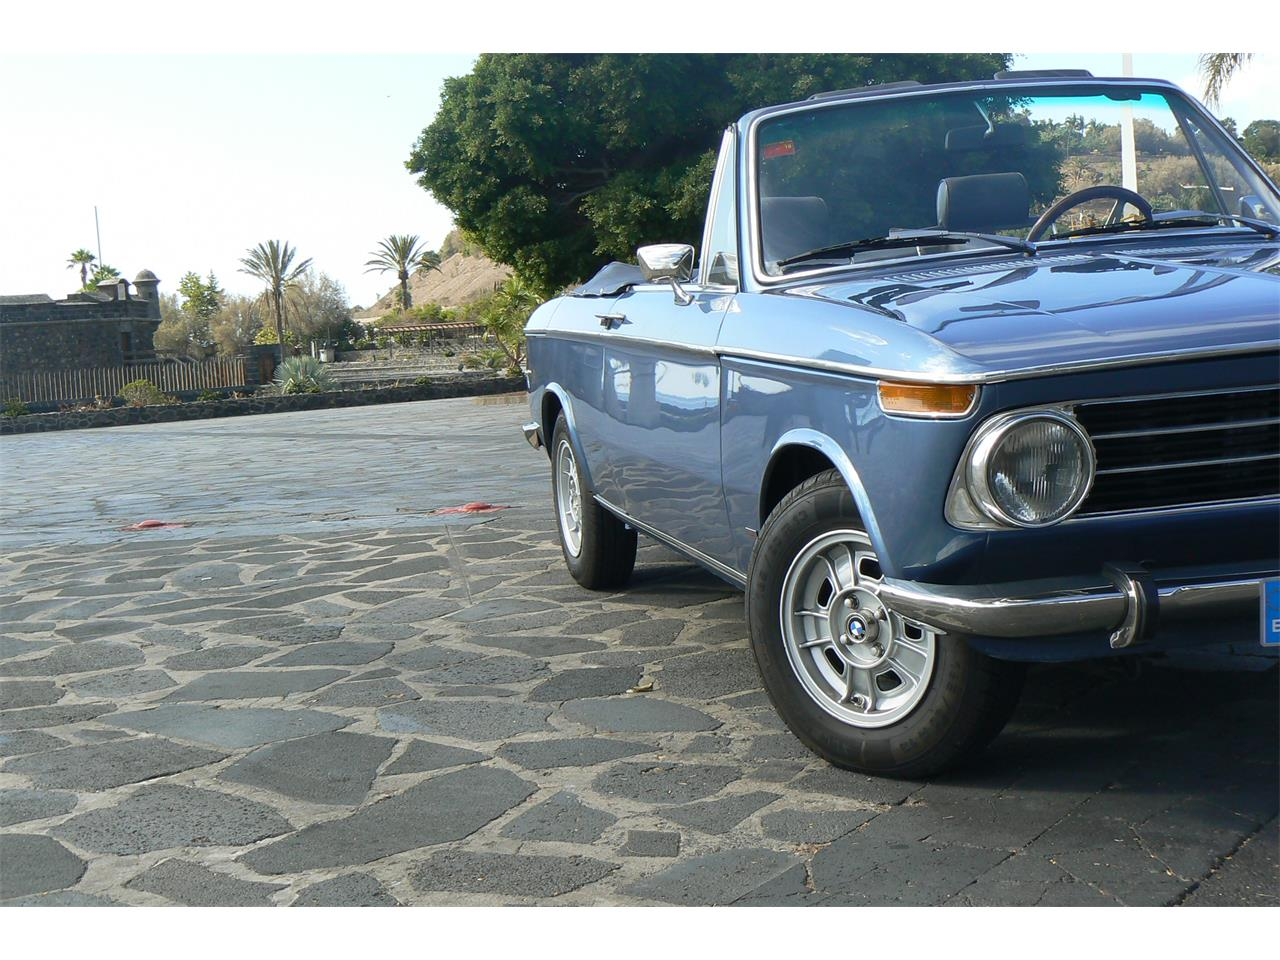 Large Picture of Classic '71 BMW 2002 located in Canary Islands - $59,000.00 Offered by a Private Seller - OZFT